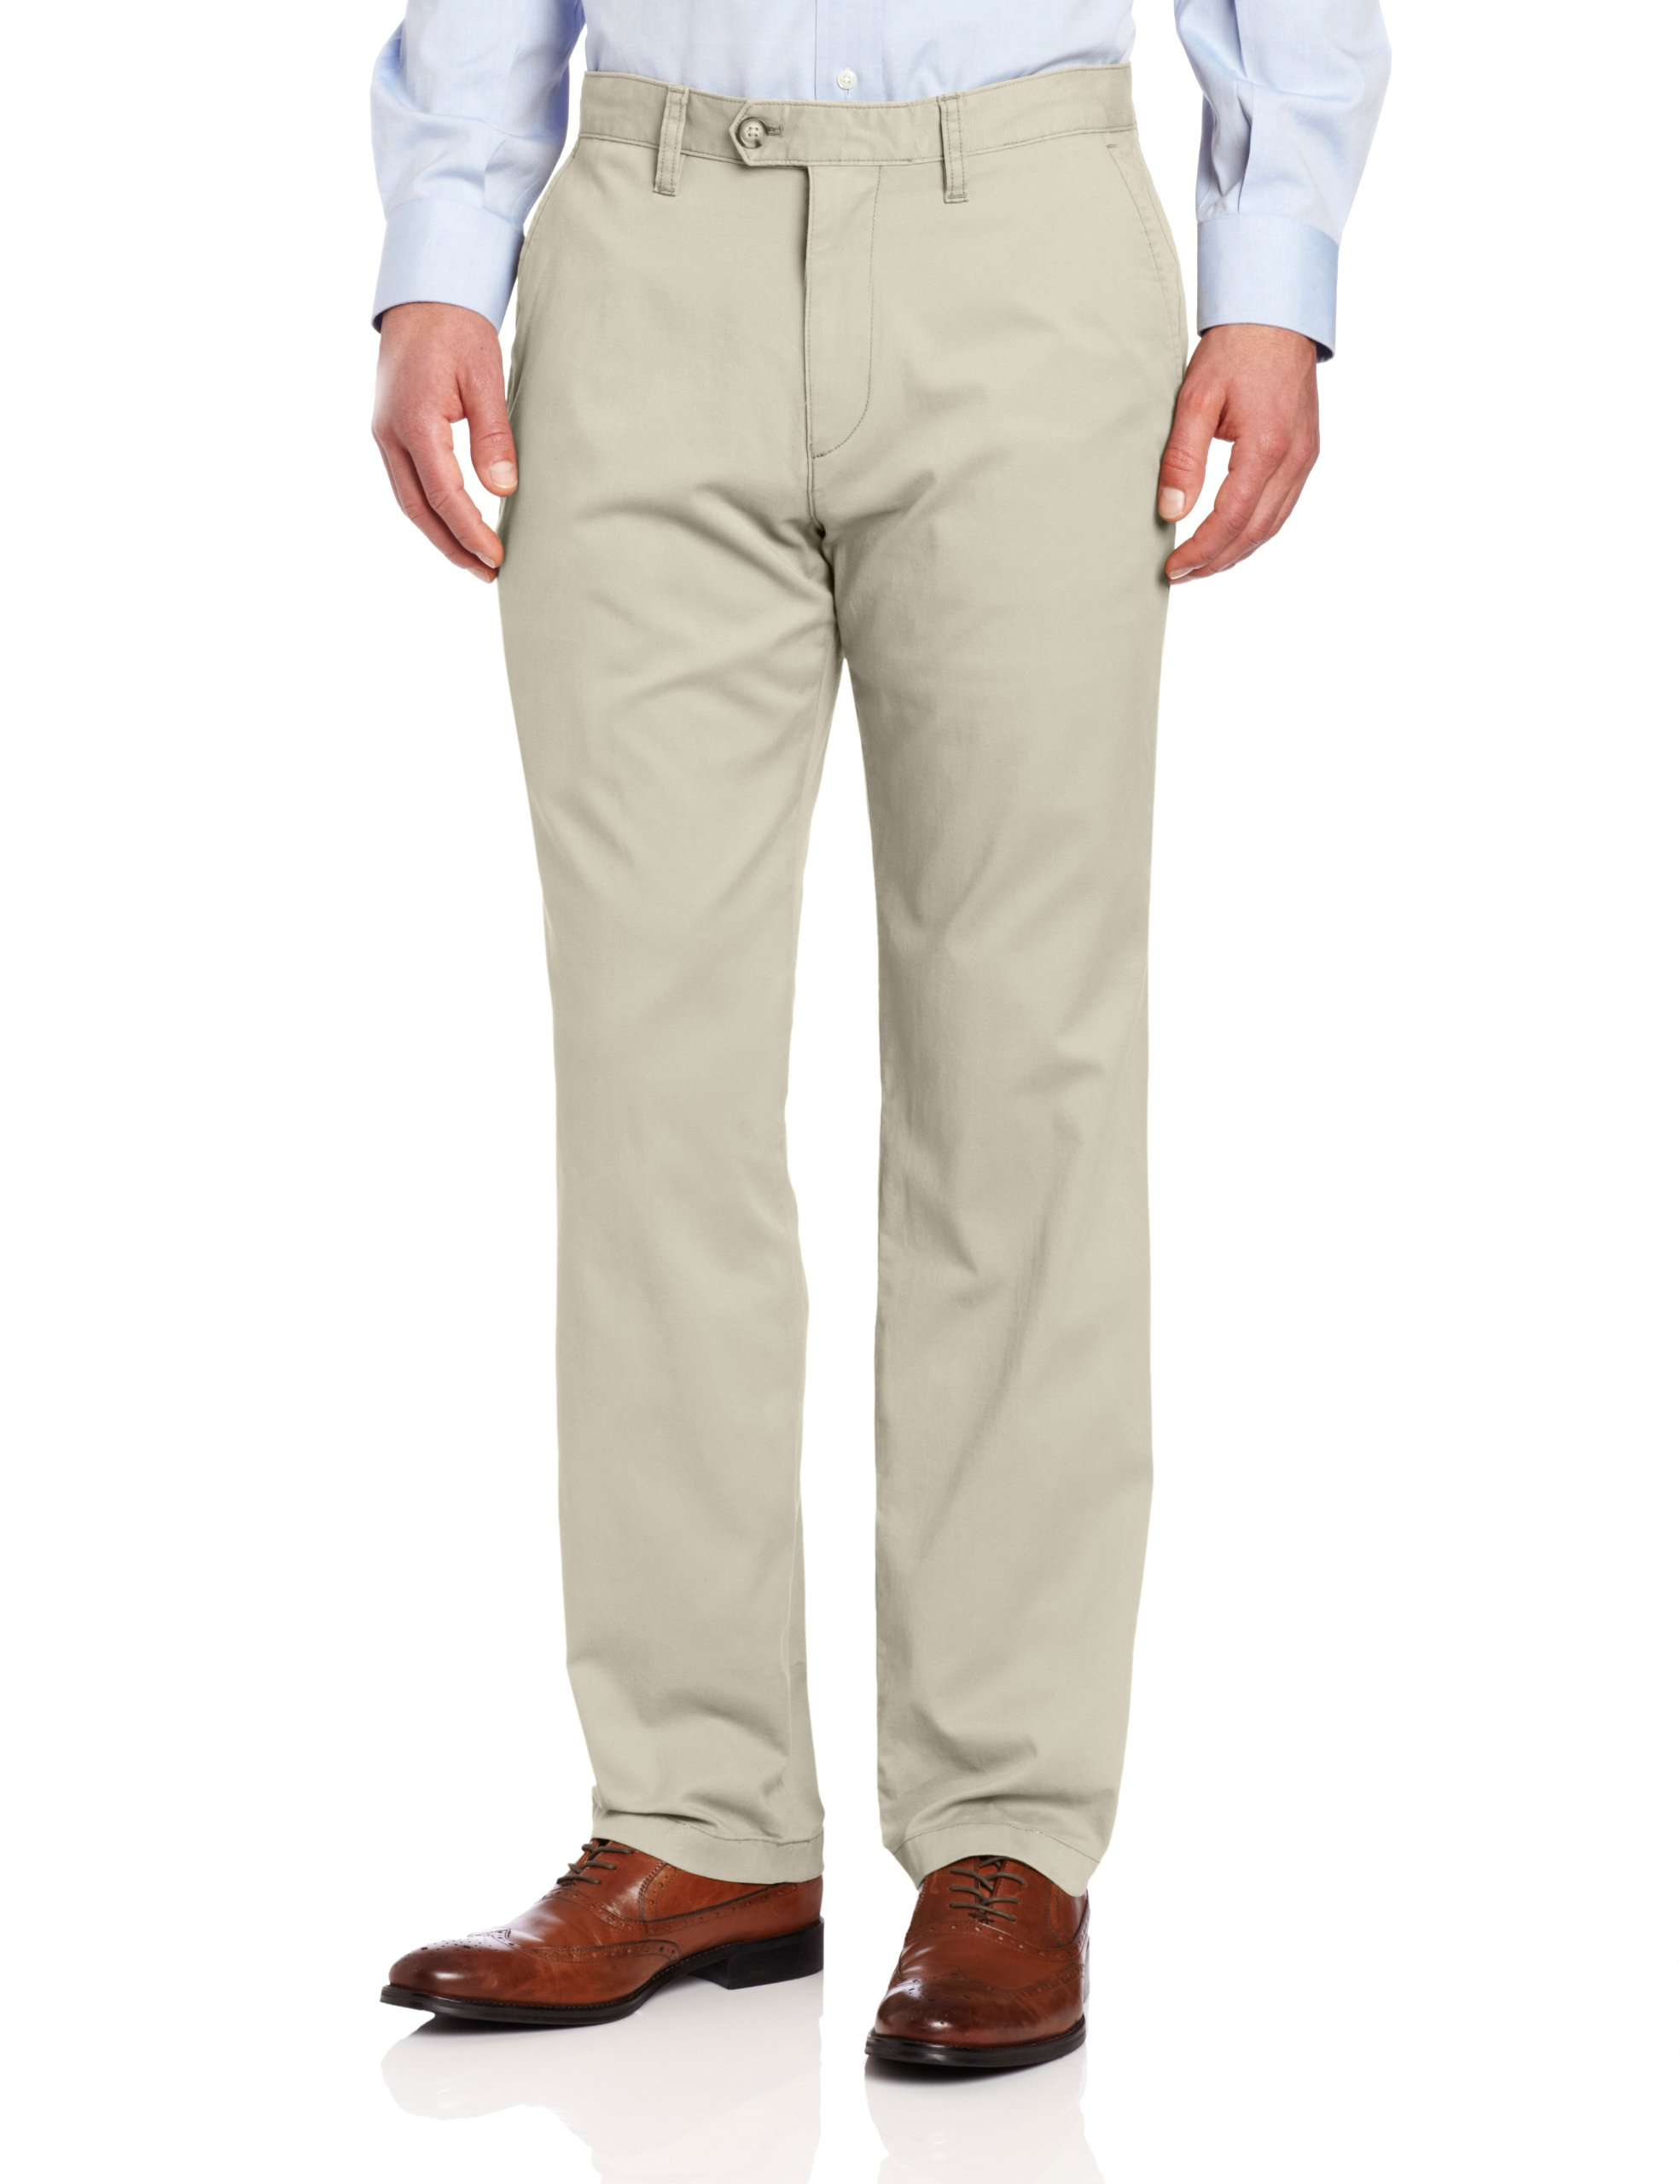 Nautica Men's Beacon Pant, True Stone, 34x30